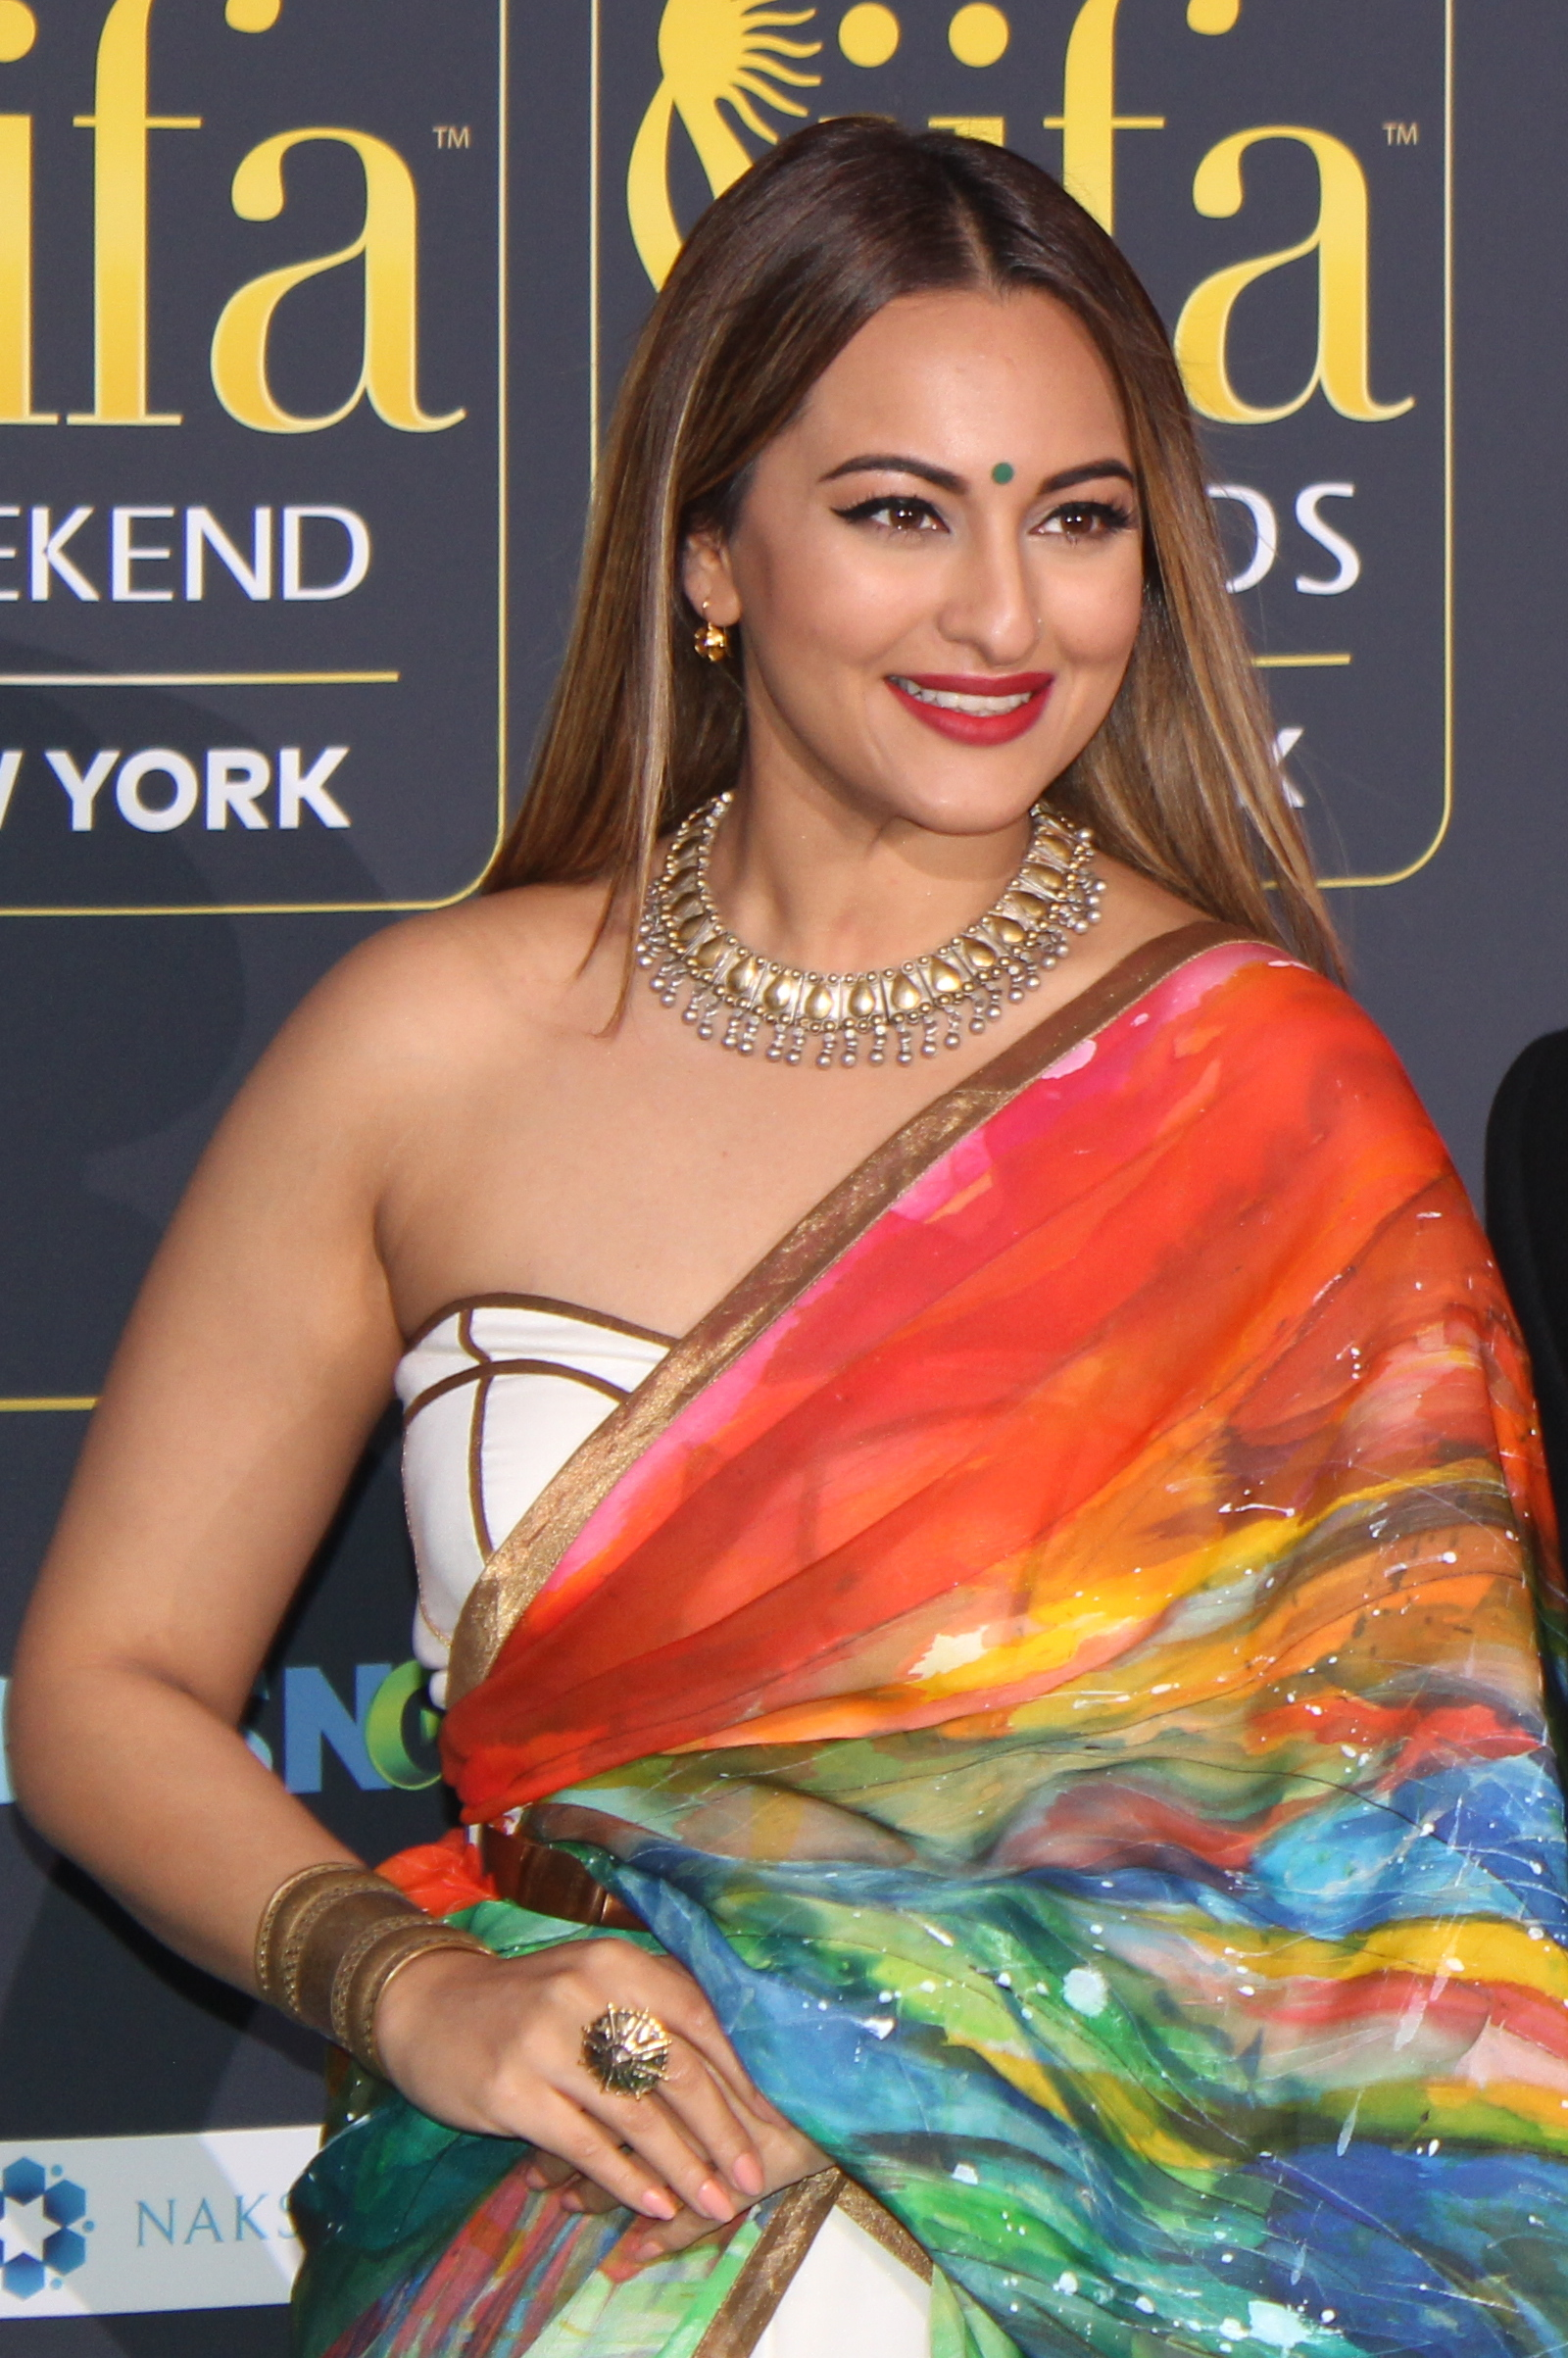 The 31-year old daughter of father Shatrughan Sinha and mother Poonam Sinha Sonakshi Sinha in 2018 photo. Sonakshi Sinha earned a  million dollar salary - leaving the net worth at 2 million in 2018